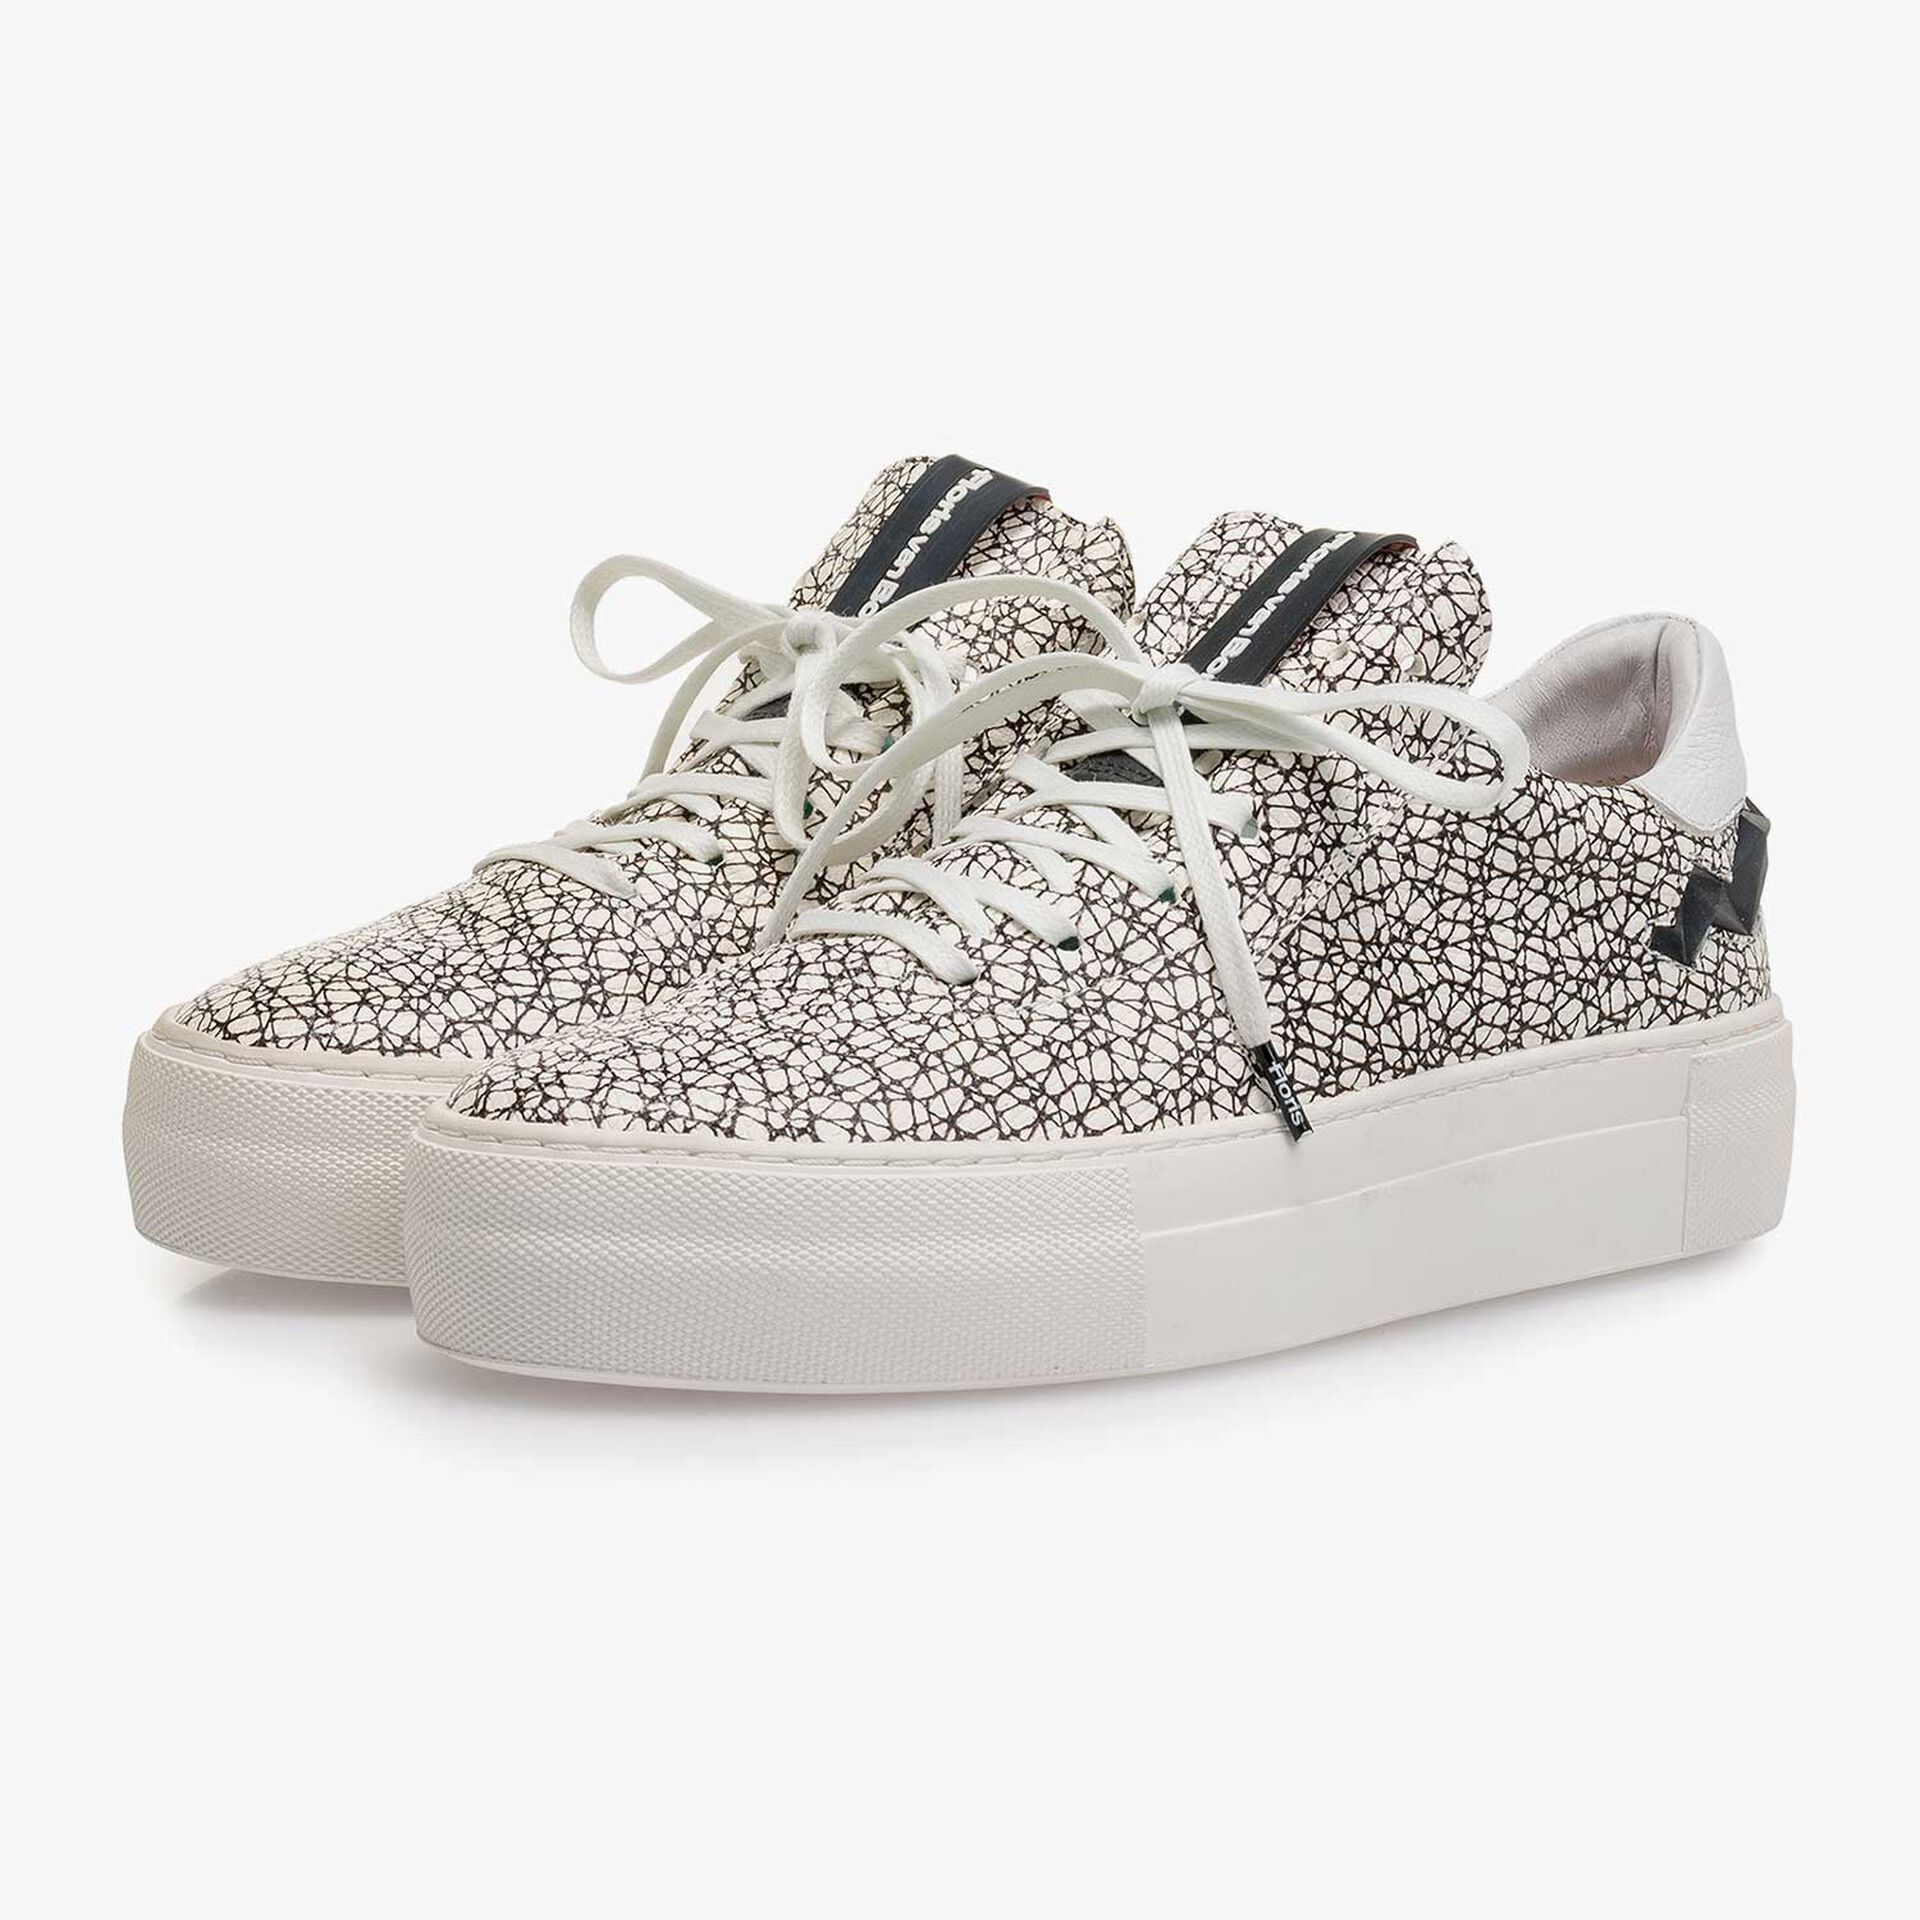 White and black leather sneaker with an all-over-print